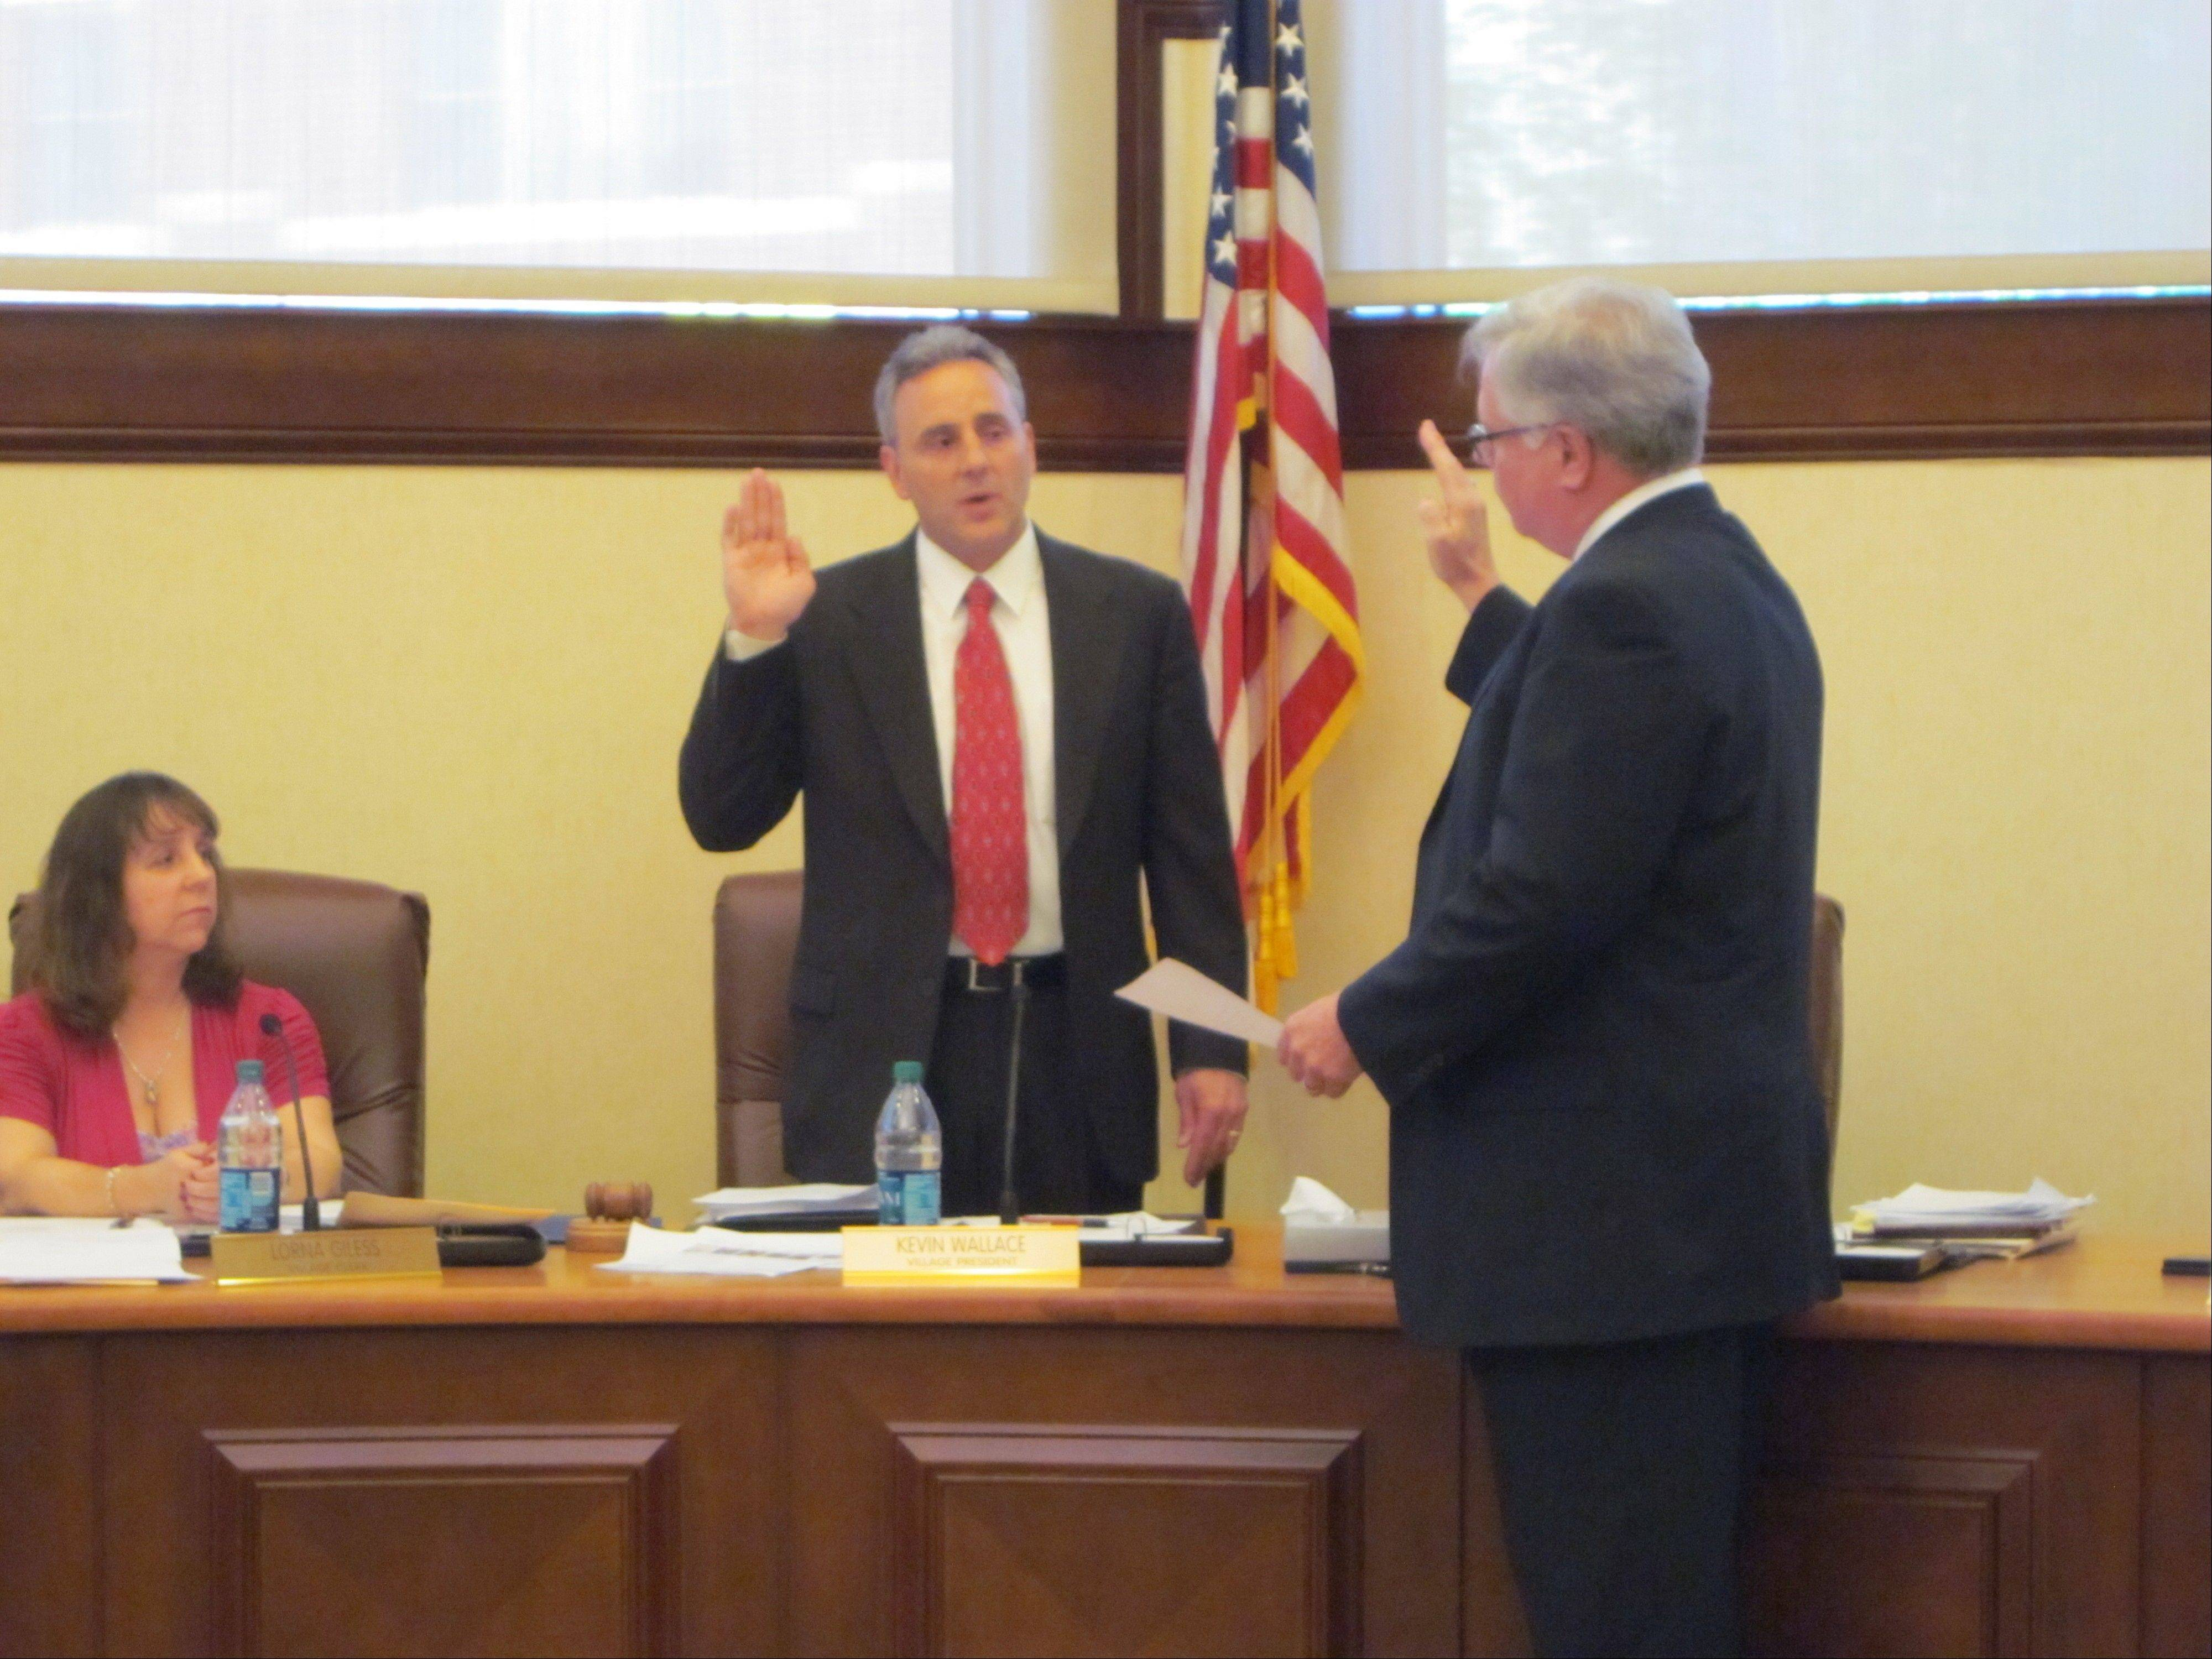 Village Attorney Bryan Mraz swears in new Village President Kevin Wallace as Village Clerk Lorna Gilees looks on during Tuesday's village board meeting.